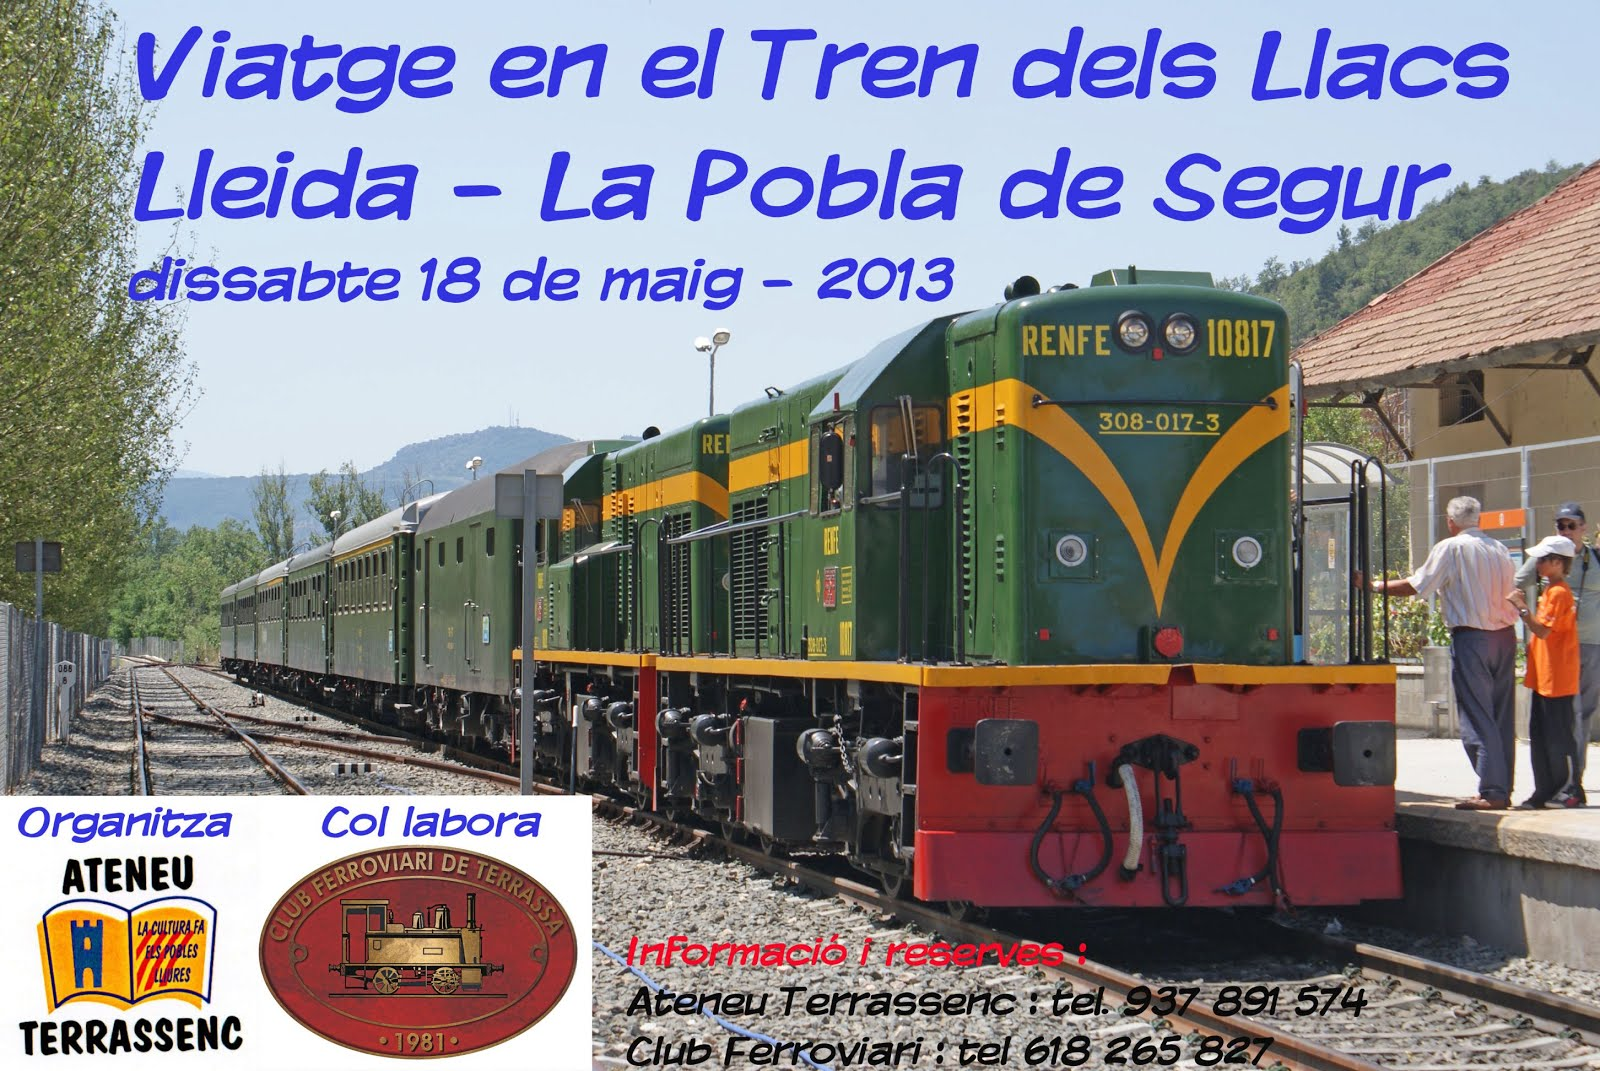 Tren dels Llacs - Cartell